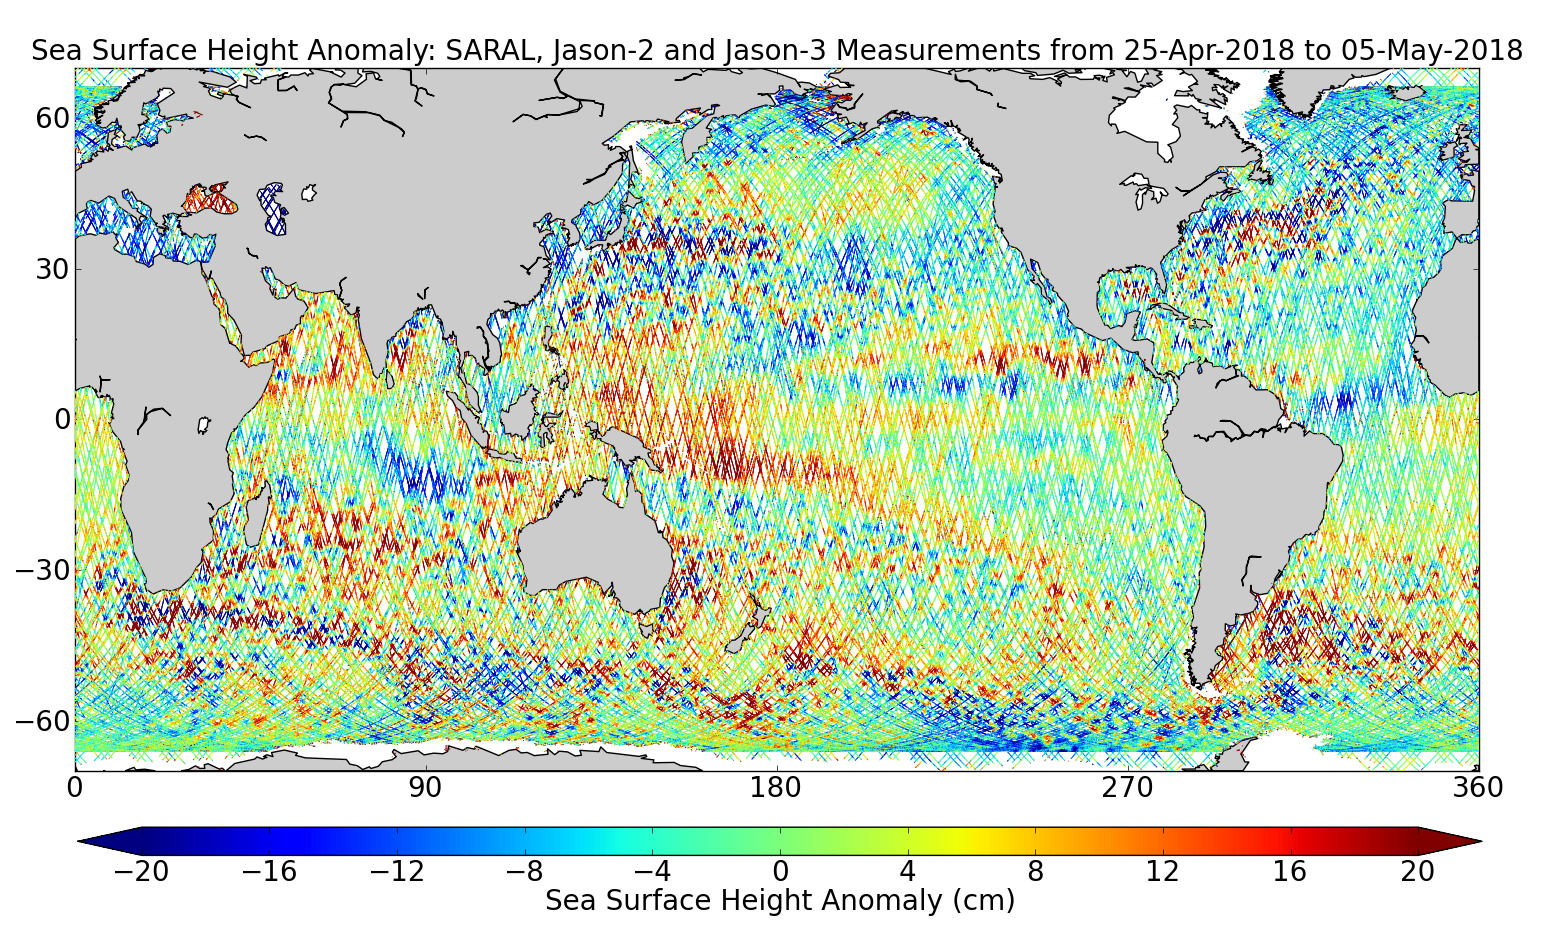 Sea Surface Height Anomaly: SARAL, Jason-2 and Jason-3 Measurements from 25-Apr-2018 to 05-May-2018